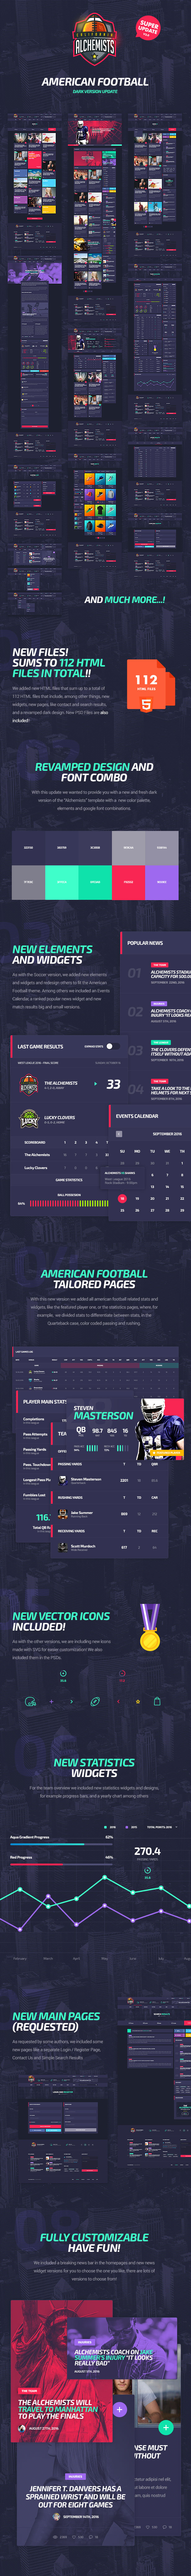 The Alchemists American Football Alchemists - Basketball, Soccer, Football Sports Club and News HTML Template (Nonprofit) Alchemists - Basketball, Soccer, Football Sports Club and News HTML Template (Nonprofit) The Alchemists HTML American Football Update